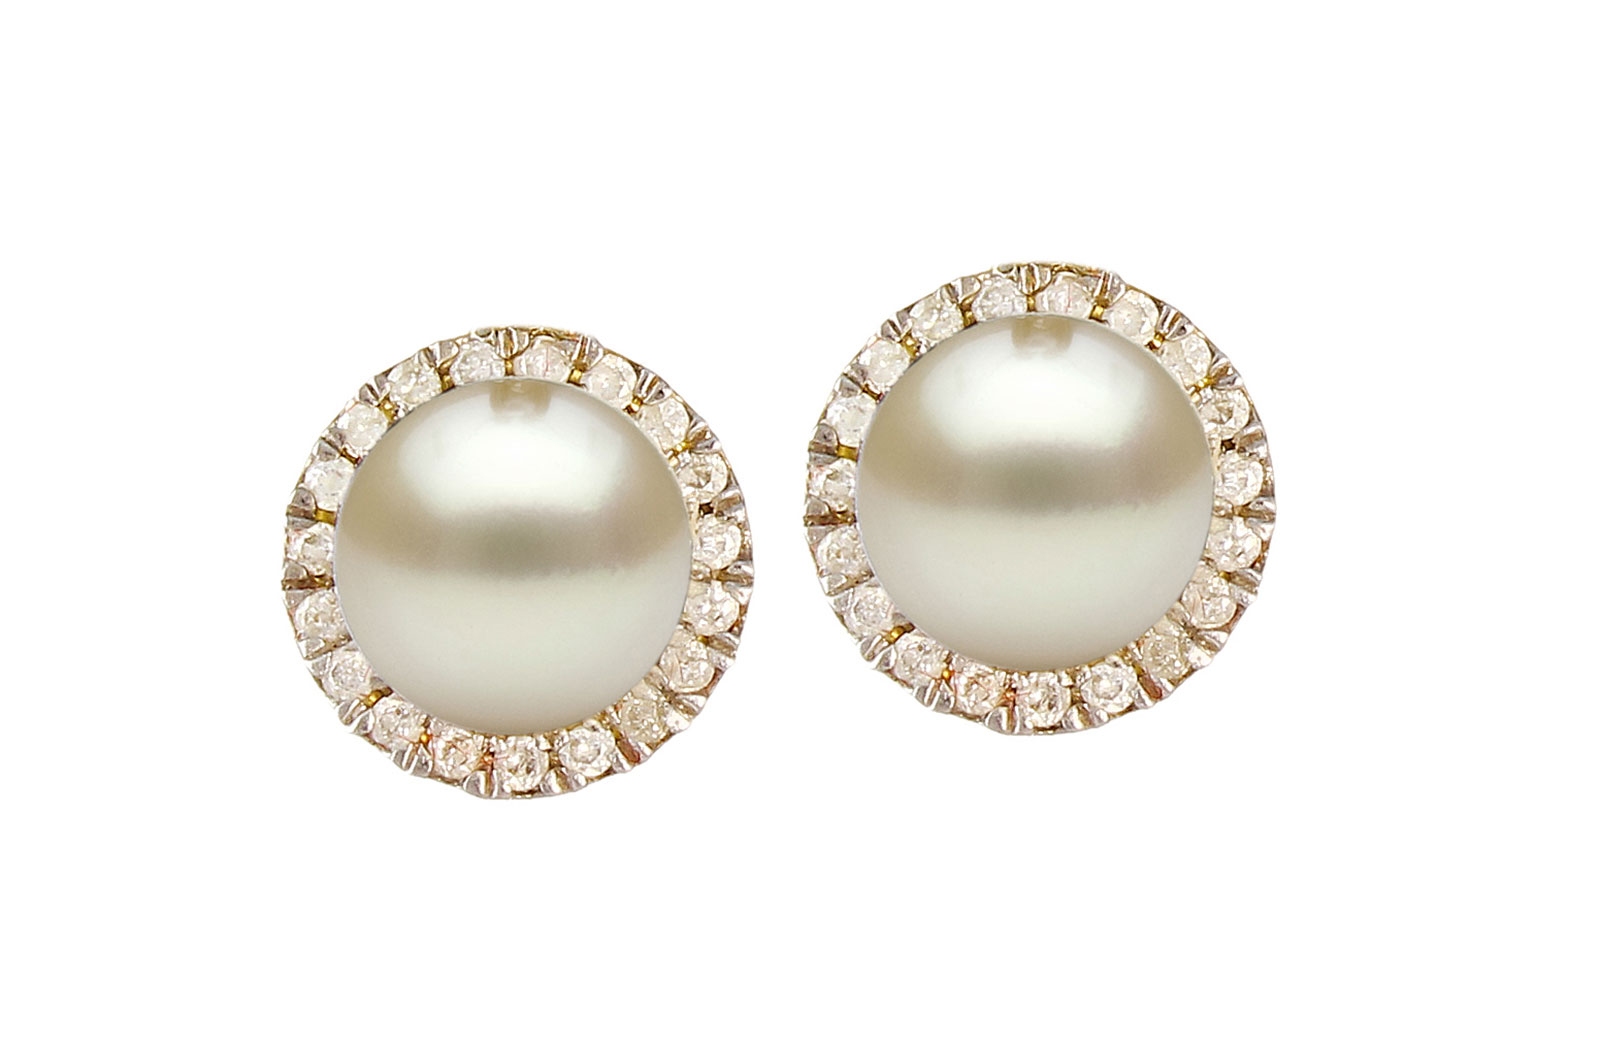 VP Jewels: 18K Solid Yellow Gold 0.20CT Genuine Diamonds  and 6mm Genuine Pearl Earrings